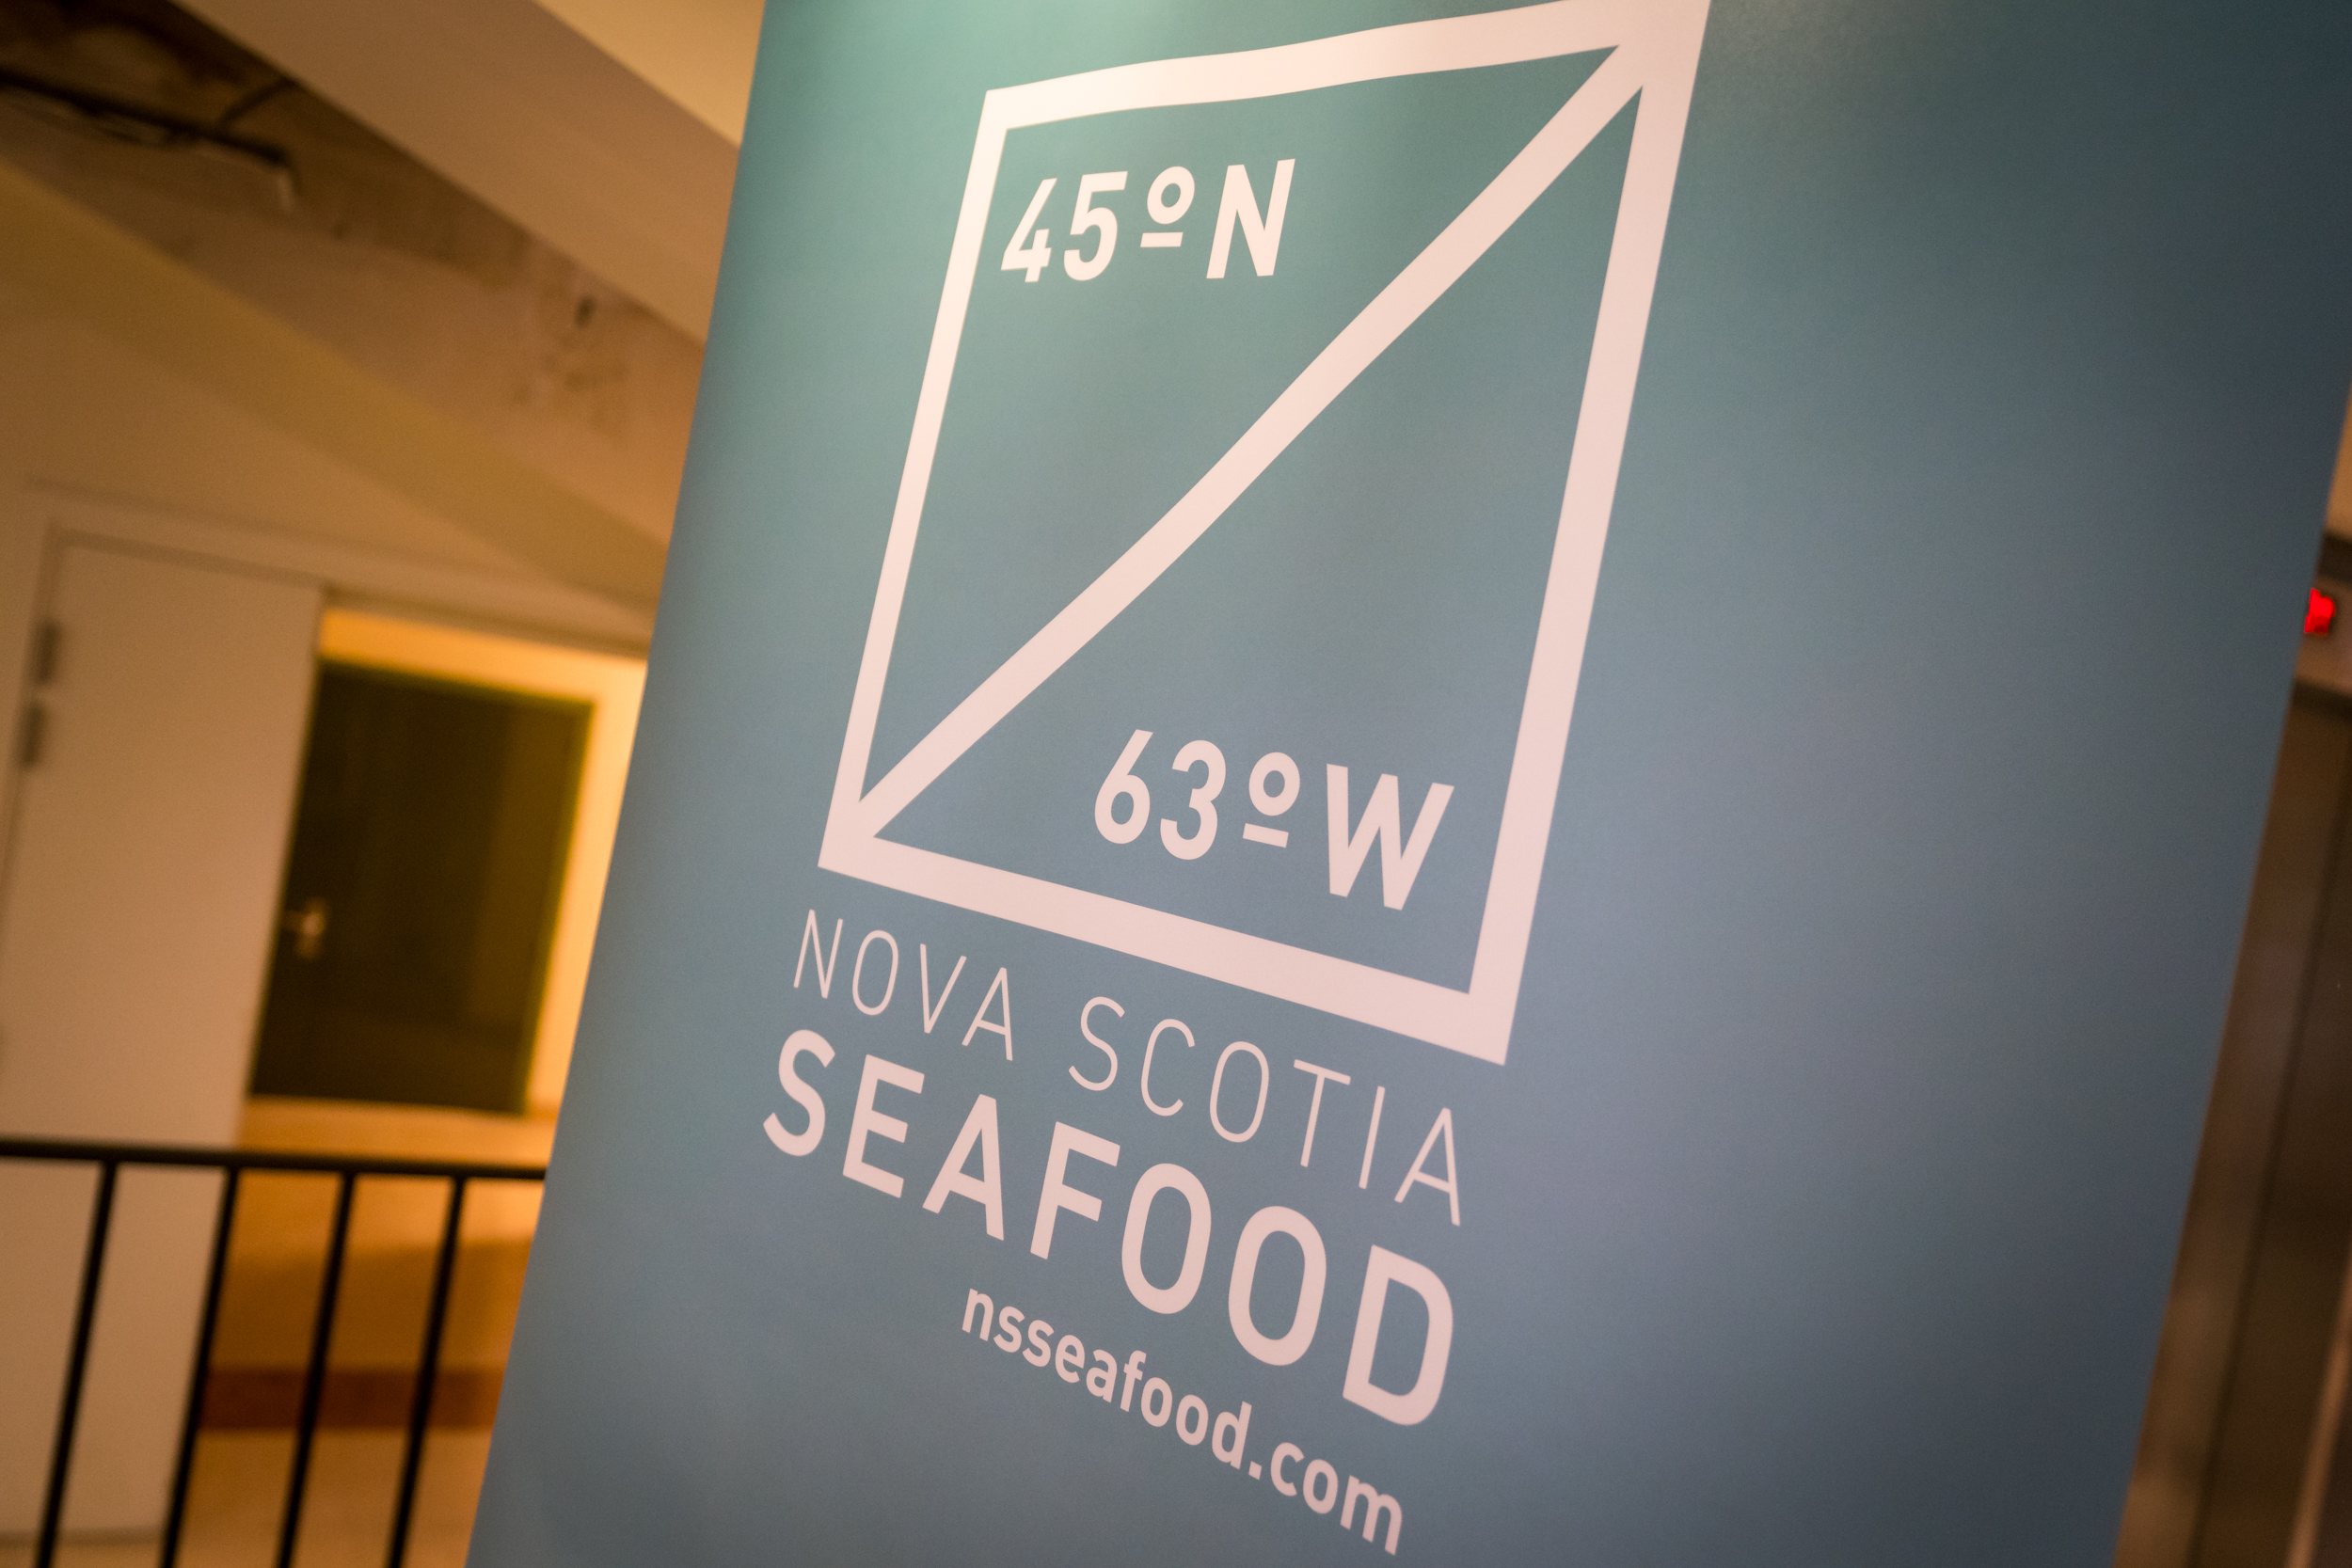 Nova Scotia Sea Food 01-06-18 © Florian Léger - SHARE & DARE-3.jpg